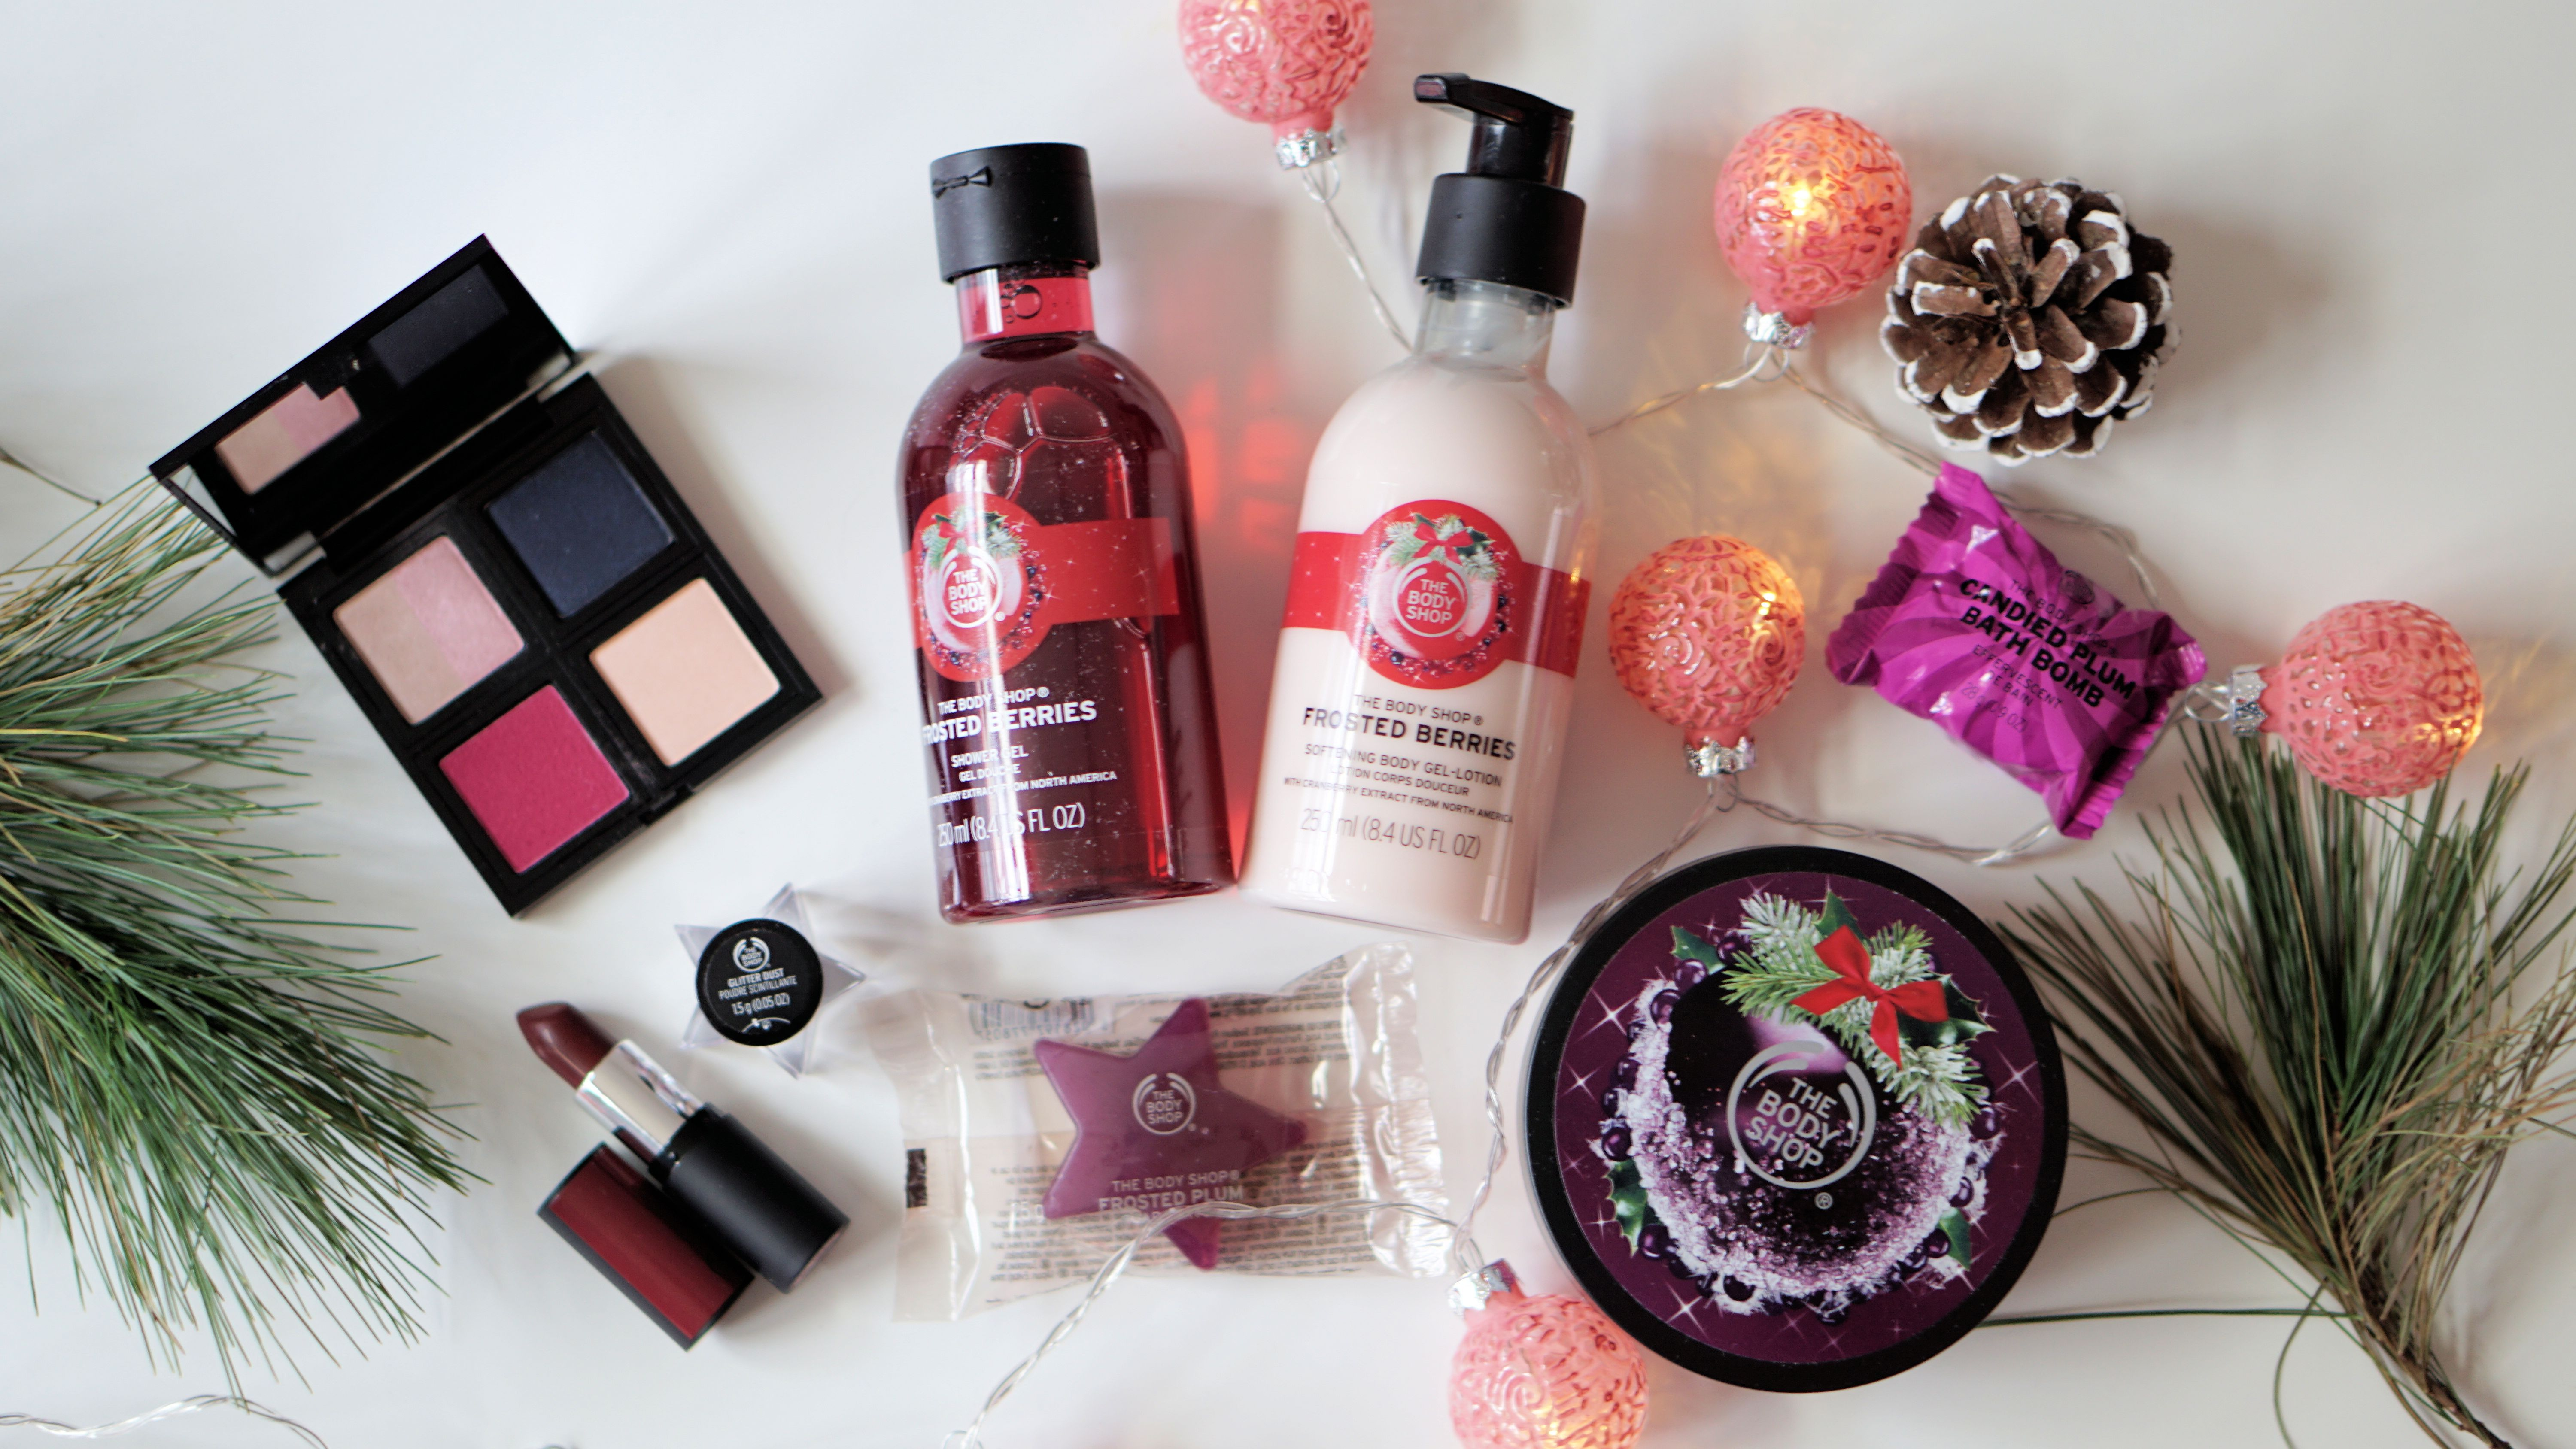 XMAS WITH THE BODY SHOP